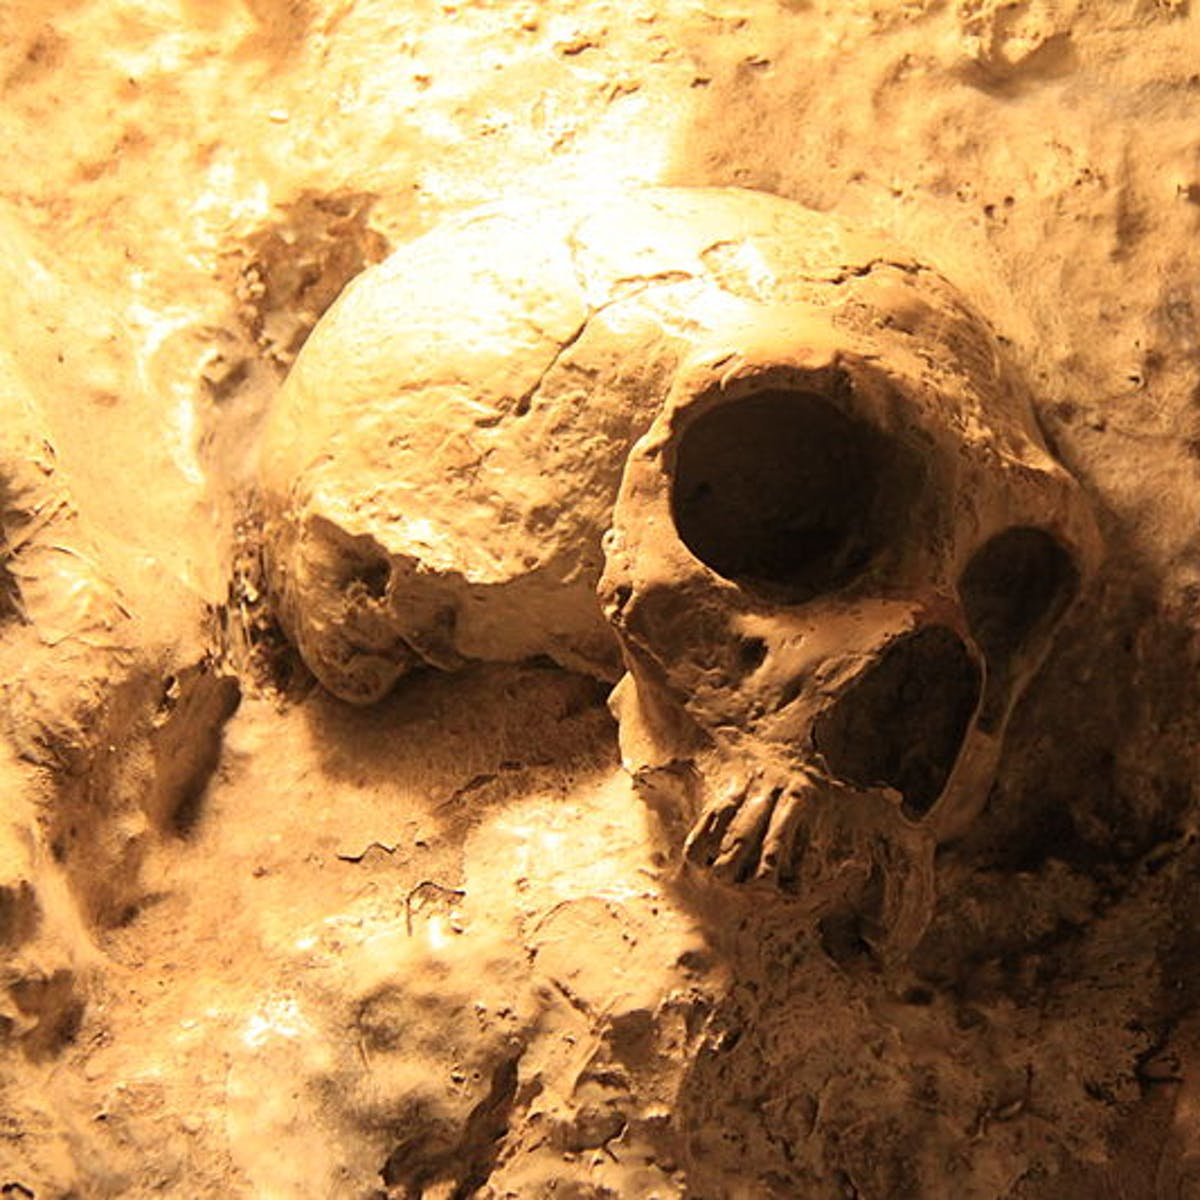 7 Discoveries About Ancient Human Evolution That Reshaped Our History